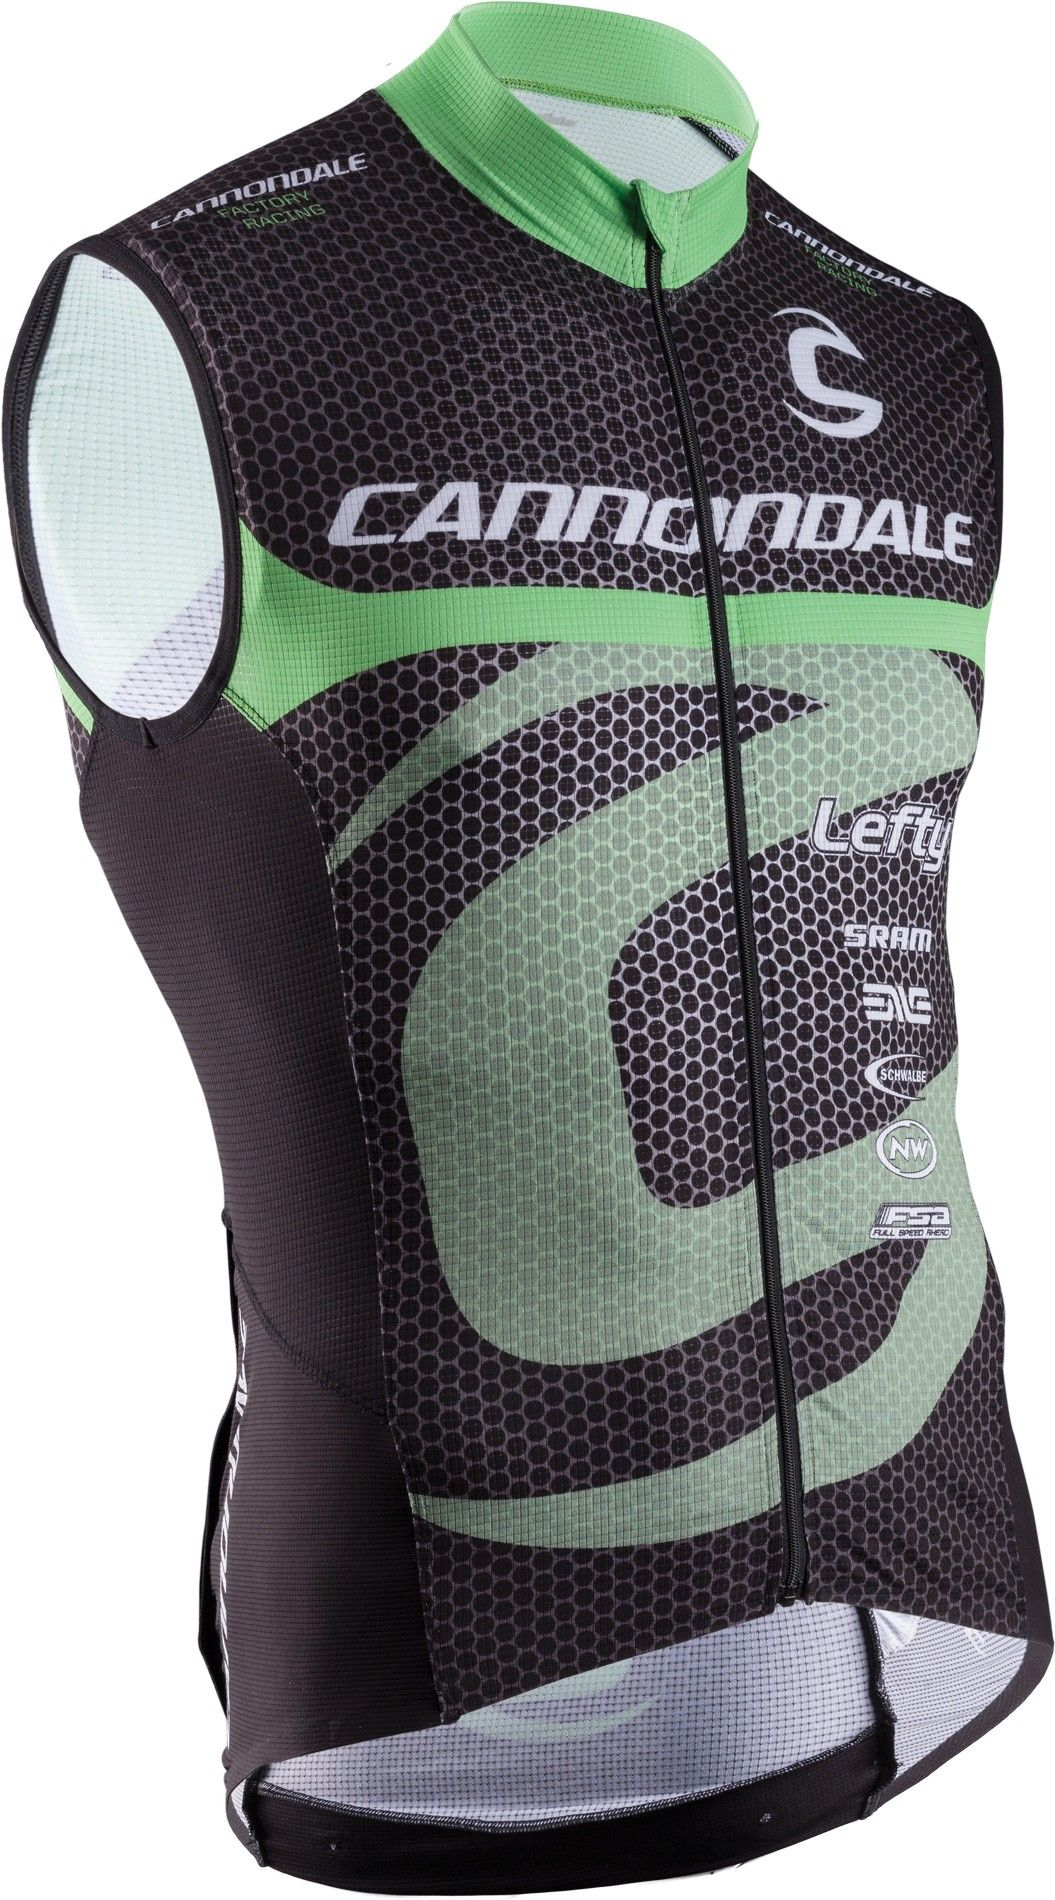 Maillot Cannondale Pro Jersey Factory Racing CFR - S